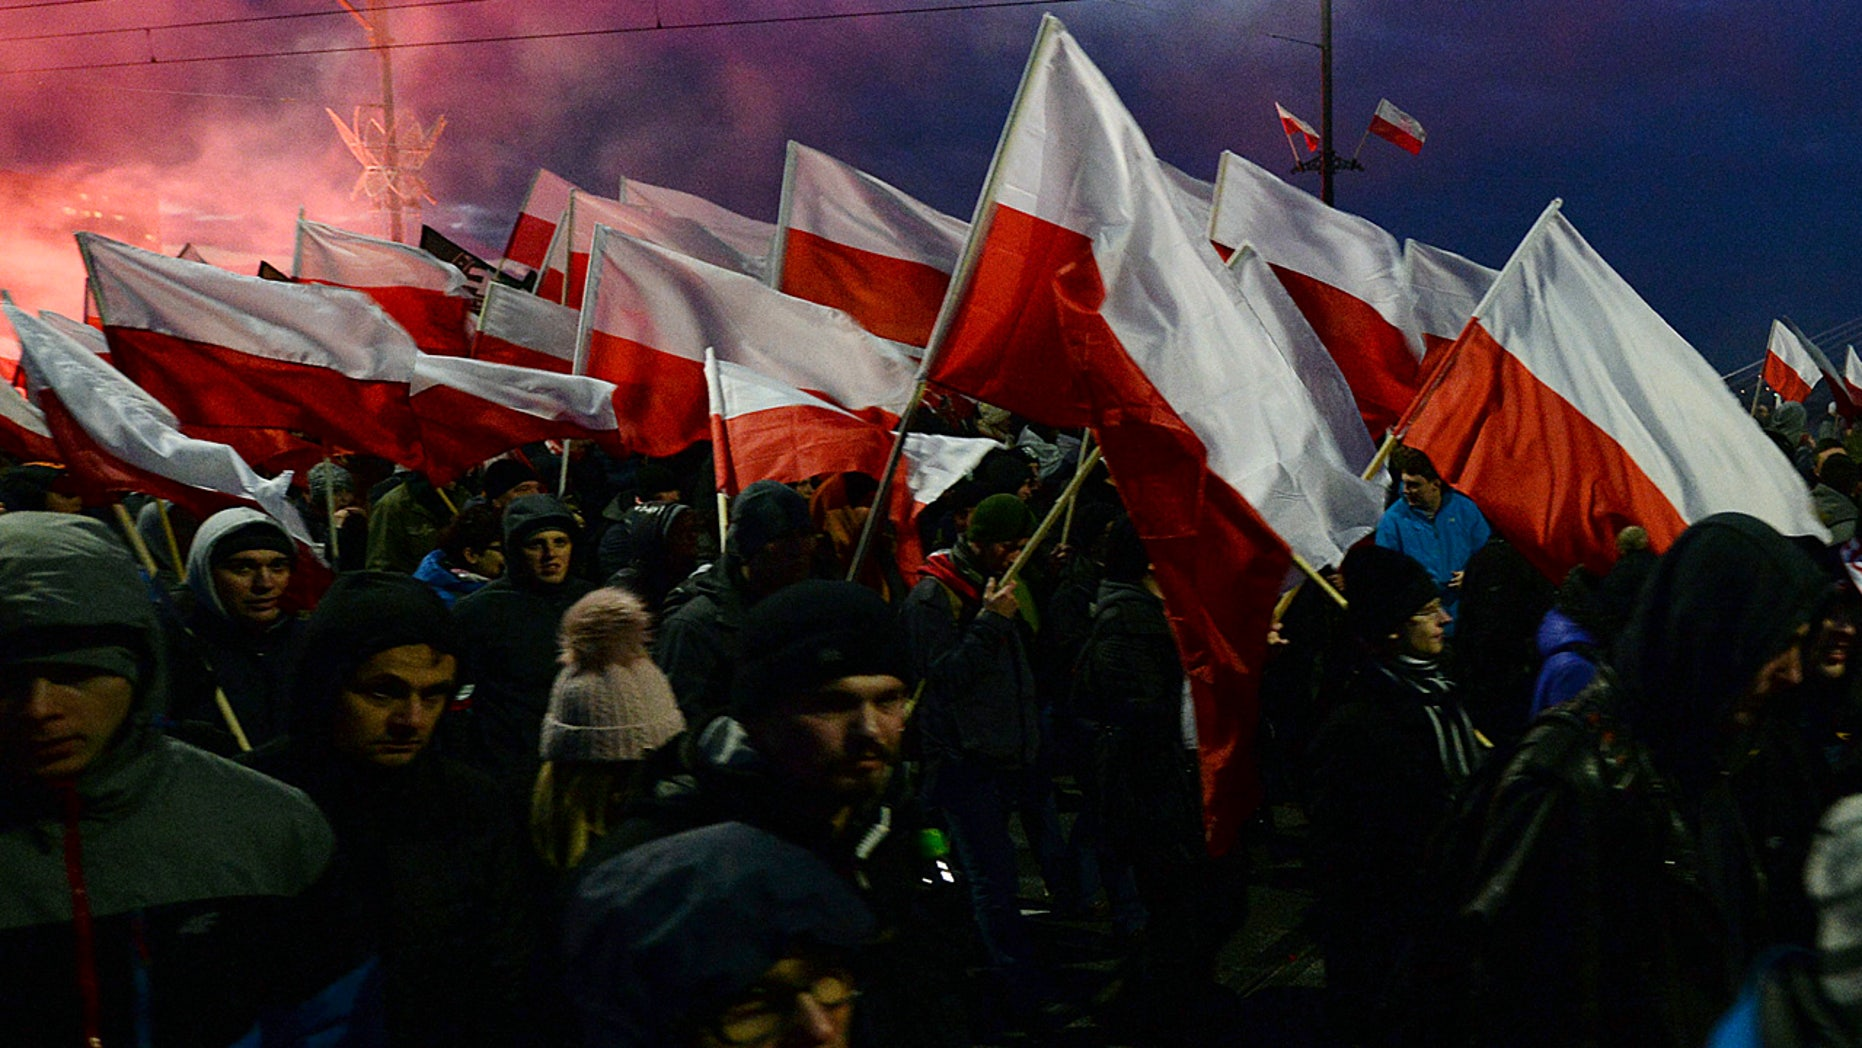 Demonstrators burned flares and waved Polish flags during the march.